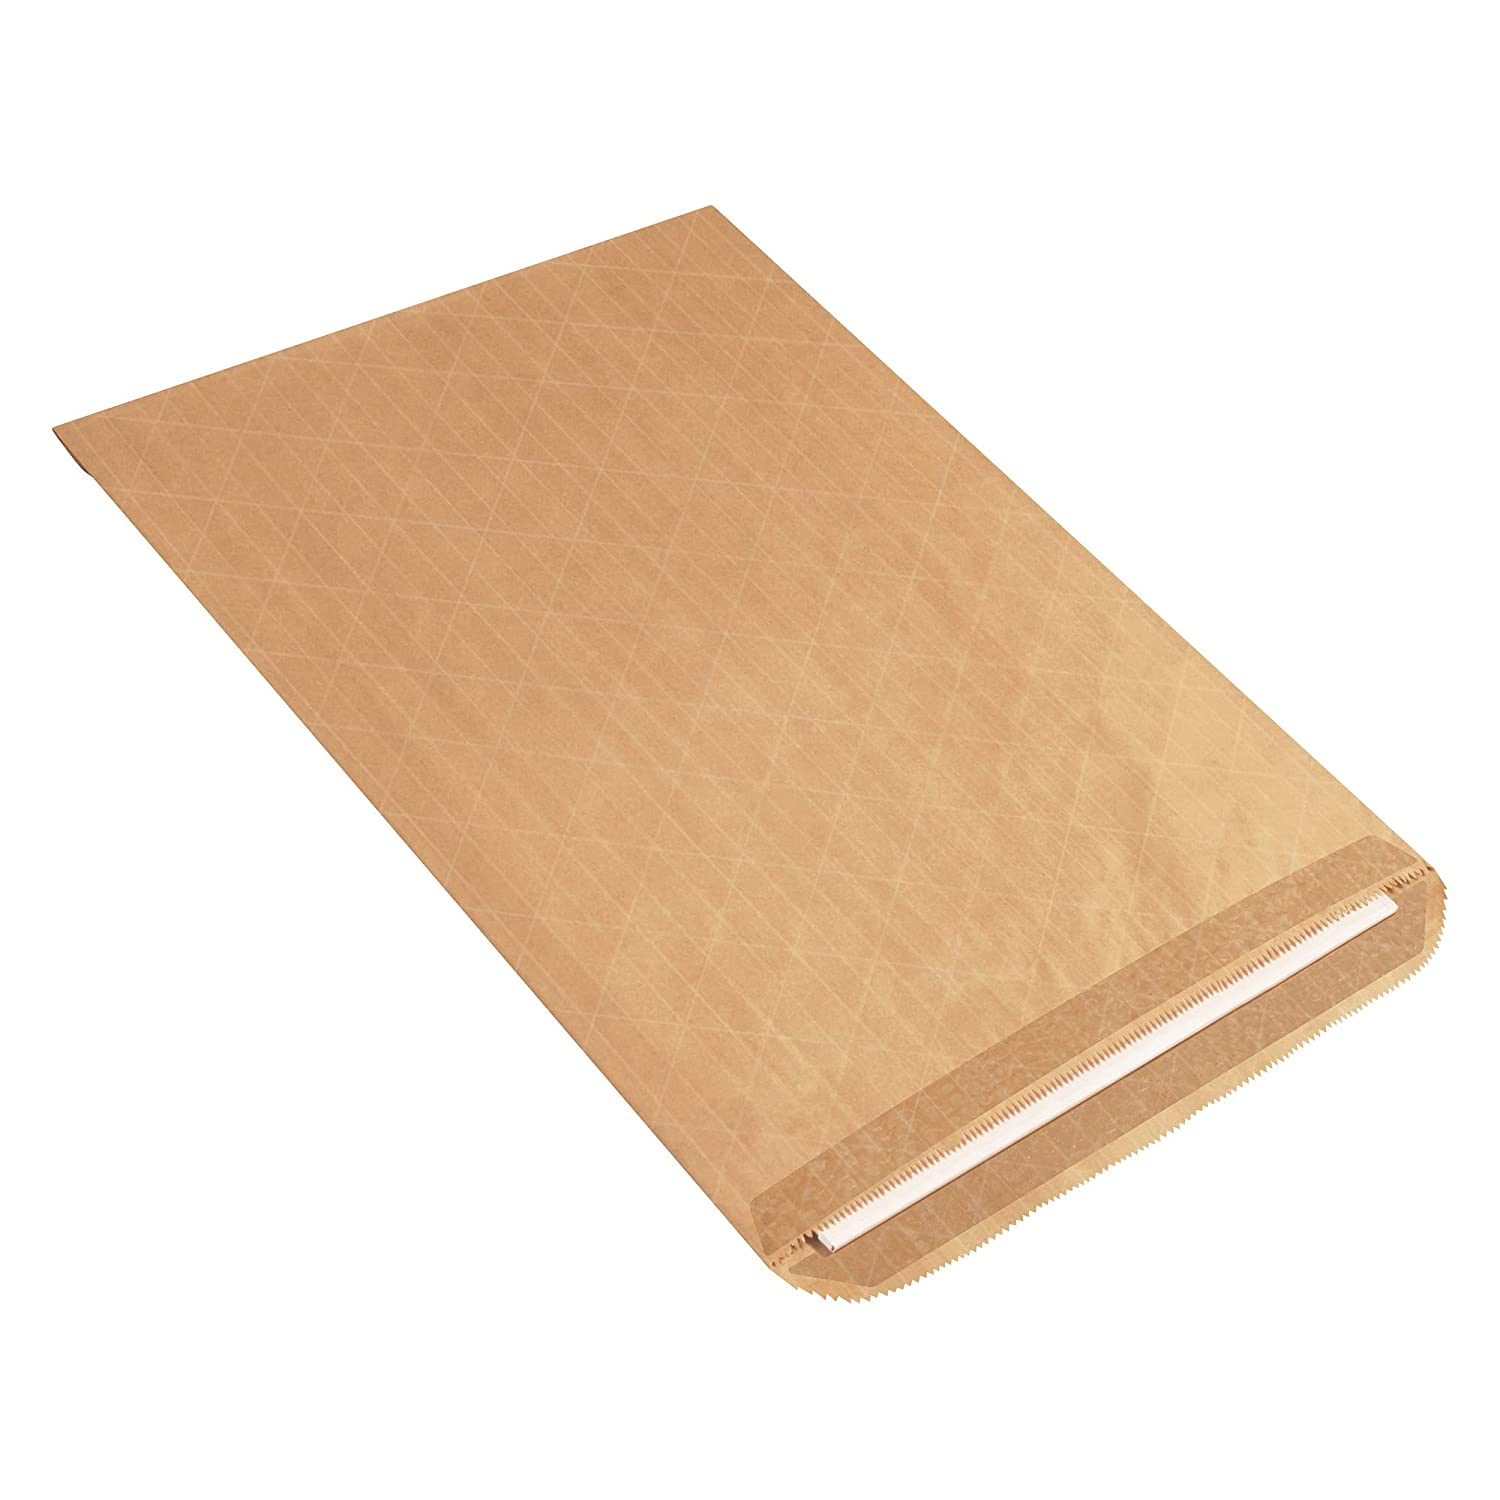 Kraft Brown Aviditi Heavy-Duty Self Seal Mailer Reinforced Nylon Fibers for Tear Resistance 14 1//2 x 20 7 for Shipping and Mailing Items That Dont Require Extra Padding Pack of 250